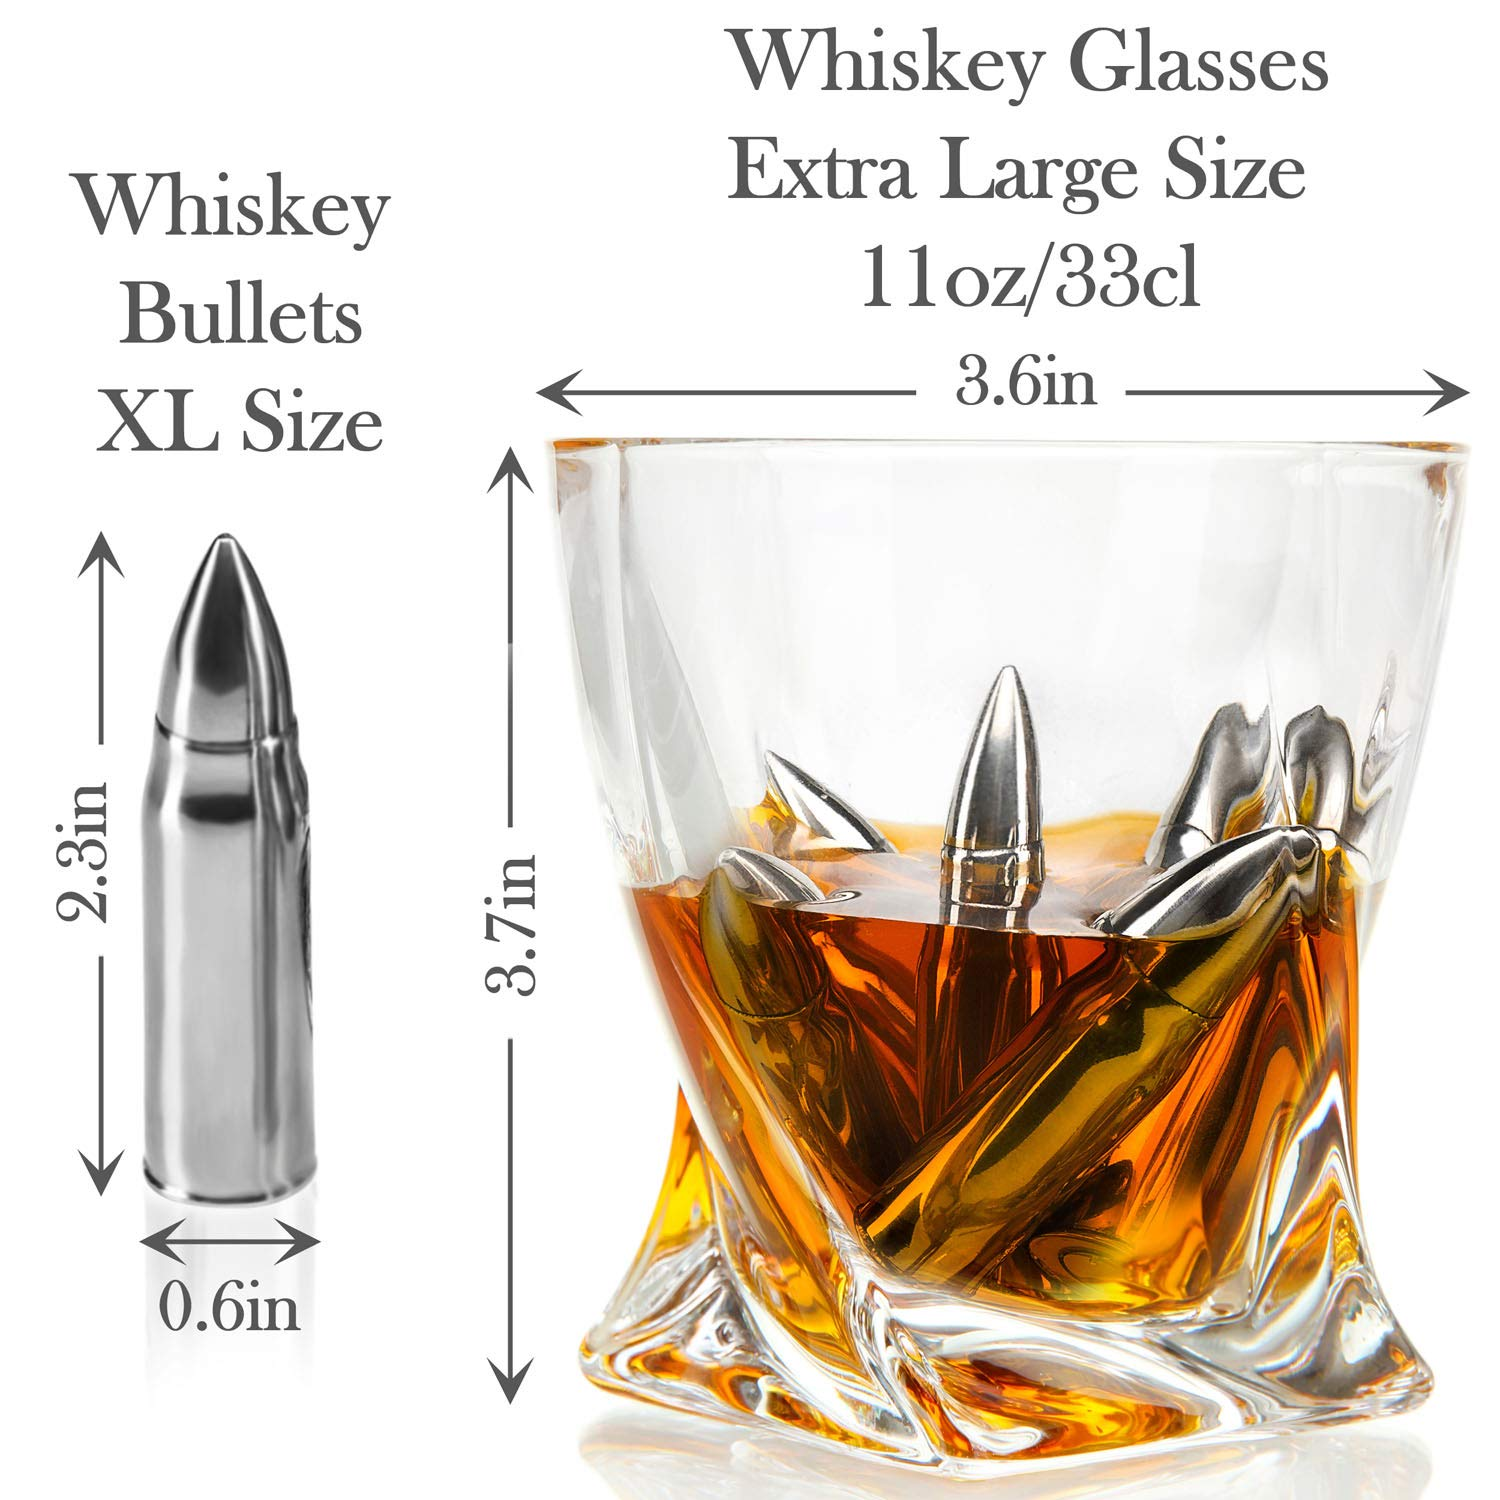 Whiskey Bullet Stones Premium Gift Set By Frolk, Set Of 6 Extra Large Stainless Steel Whiskey Stones, 2 Large Twisted Whiskey Glasses (11 oz), Freezer Base, Velvet Pouch & Tongs In Novelty Wooden Box by Frolk (Image #3)